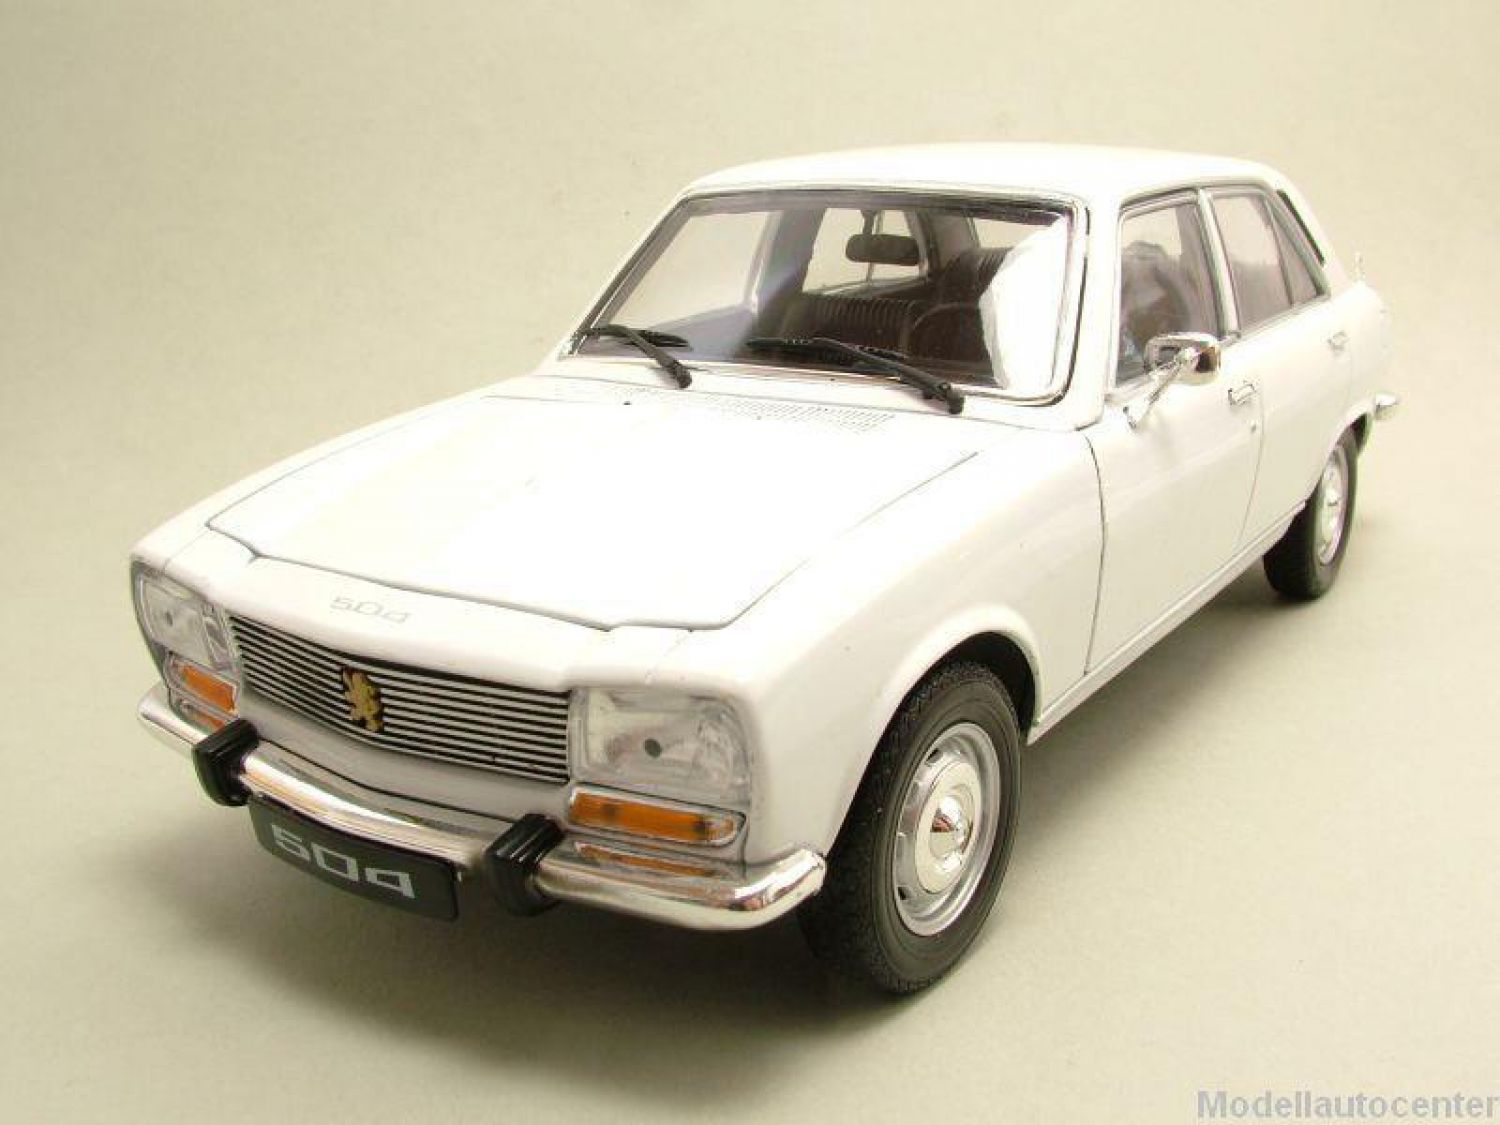 peugeot 504 1975 blanc mod le de voiture 1 18 welly ebay. Black Bedroom Furniture Sets. Home Design Ideas